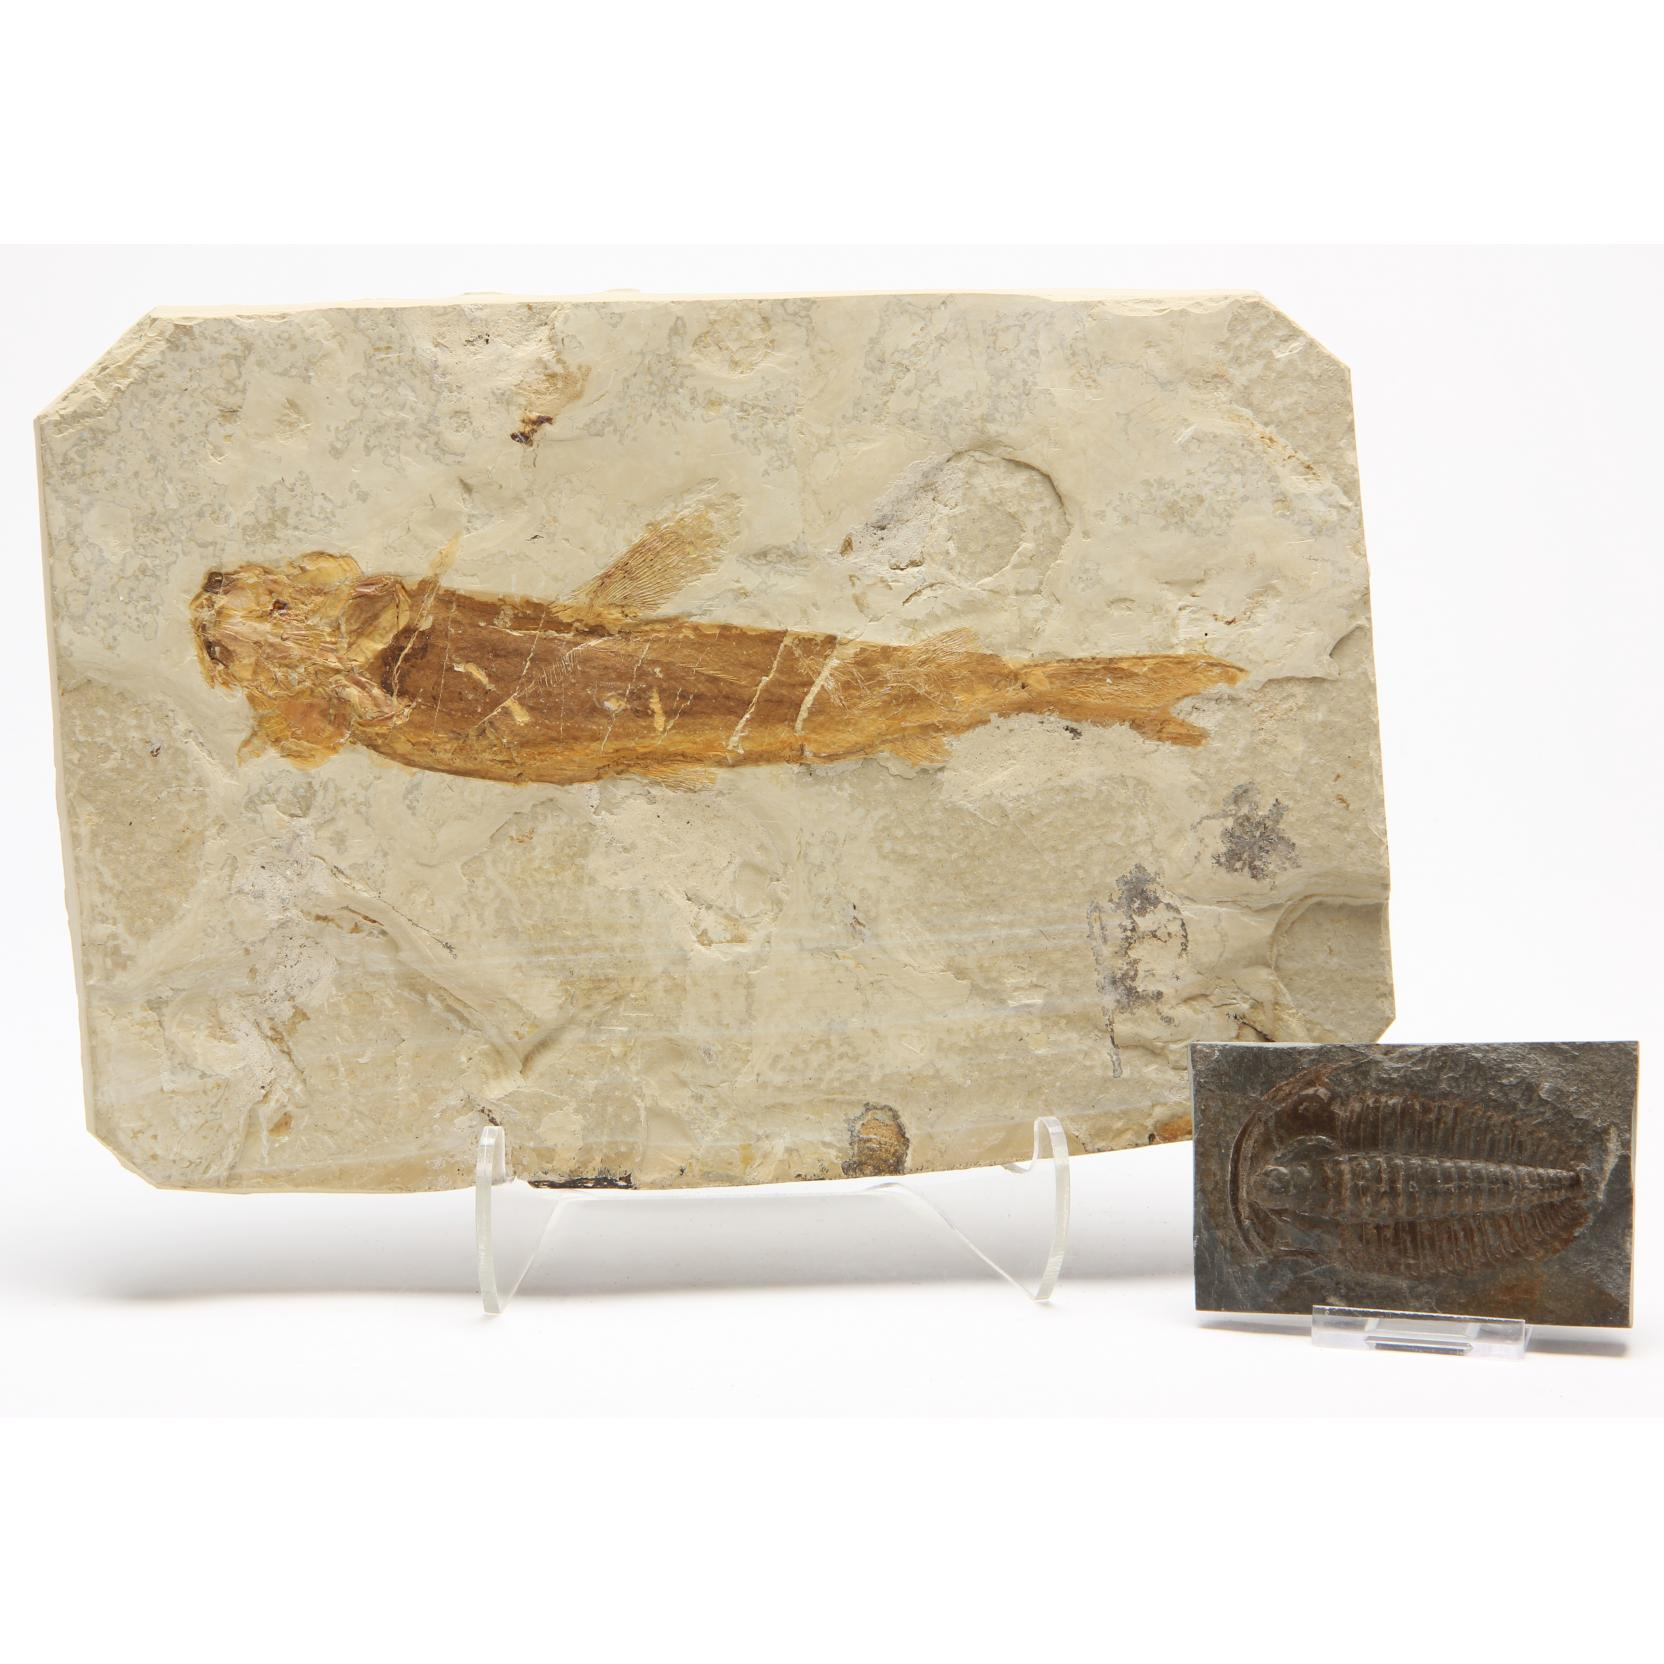 two-chinese-aquatic-fossils